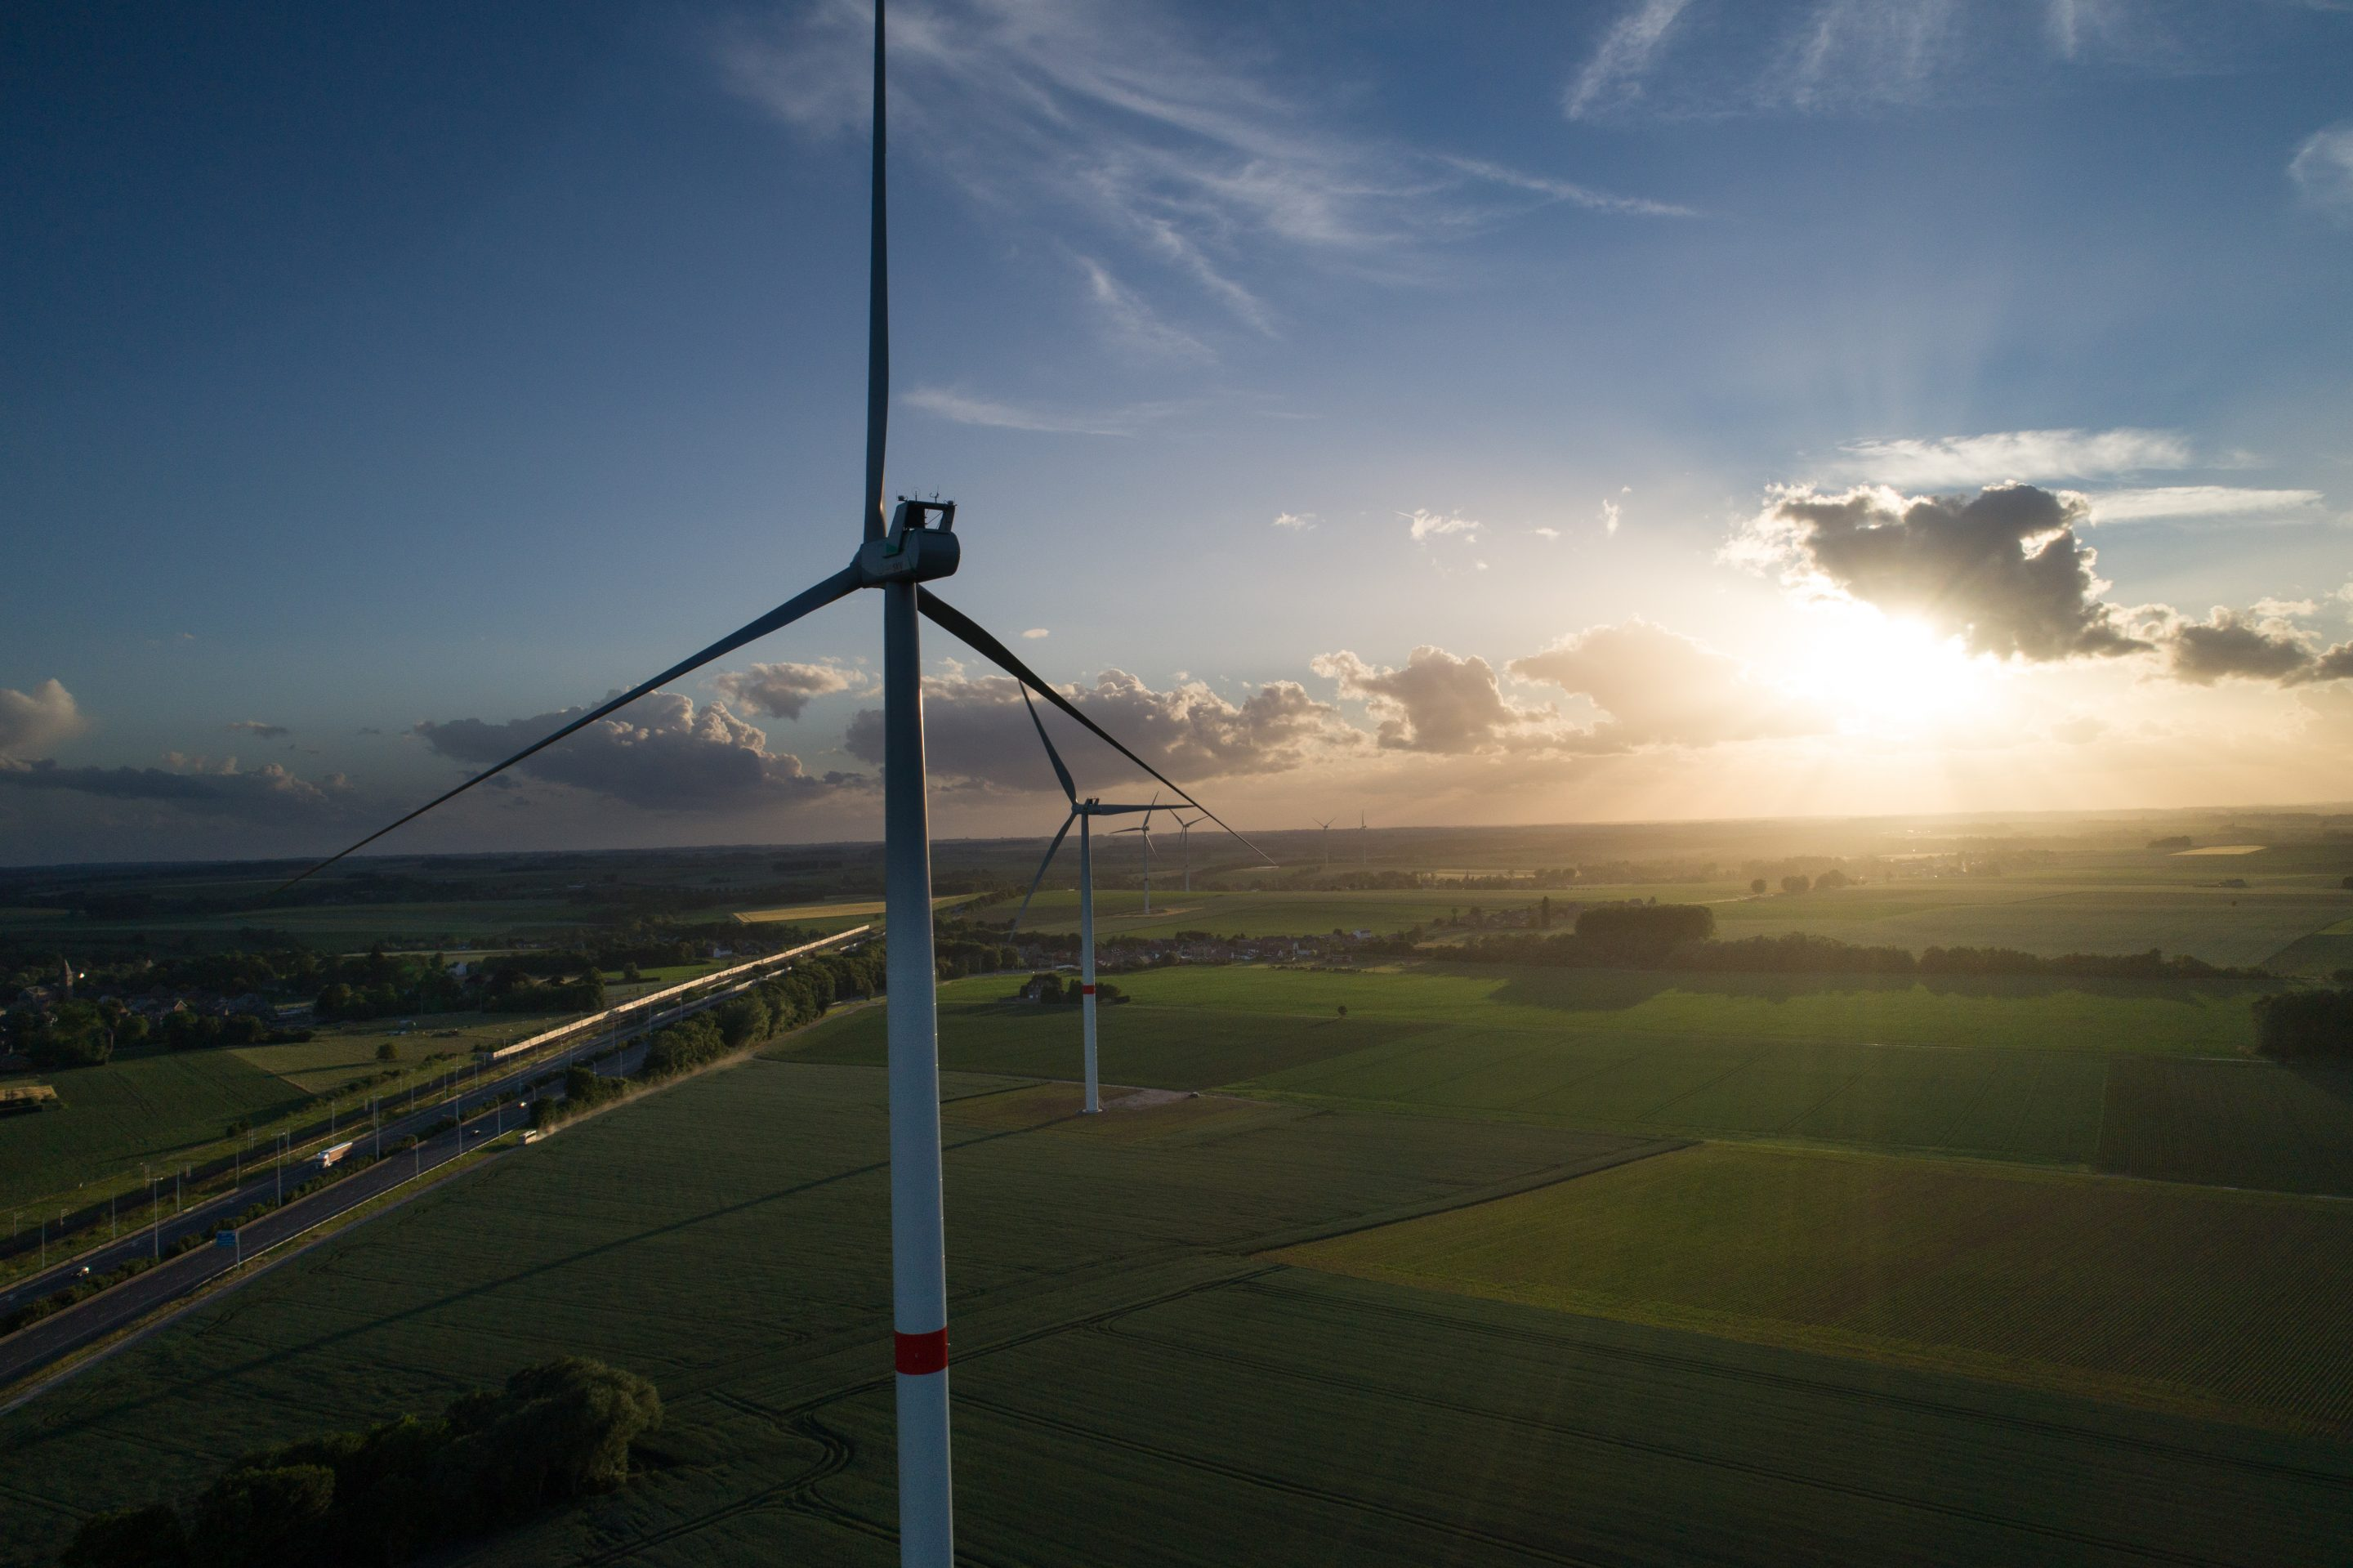 ENGIE uses a voice calling app for the maintenance of their wind turbines